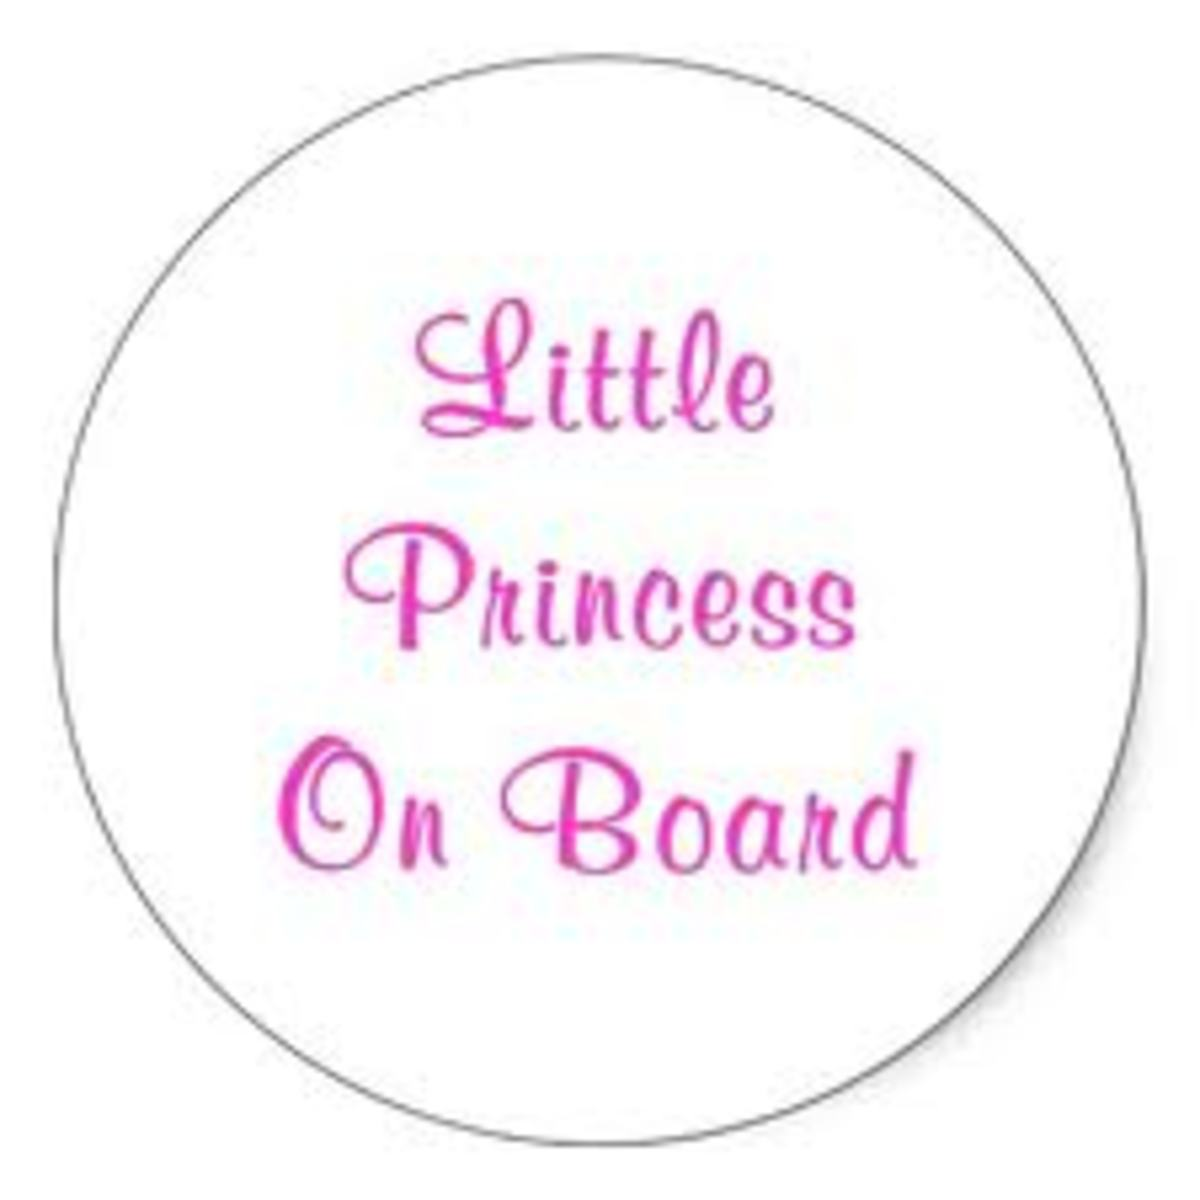 Little Princess Car Sticker - Just Encourages Pretentious Behaviour!